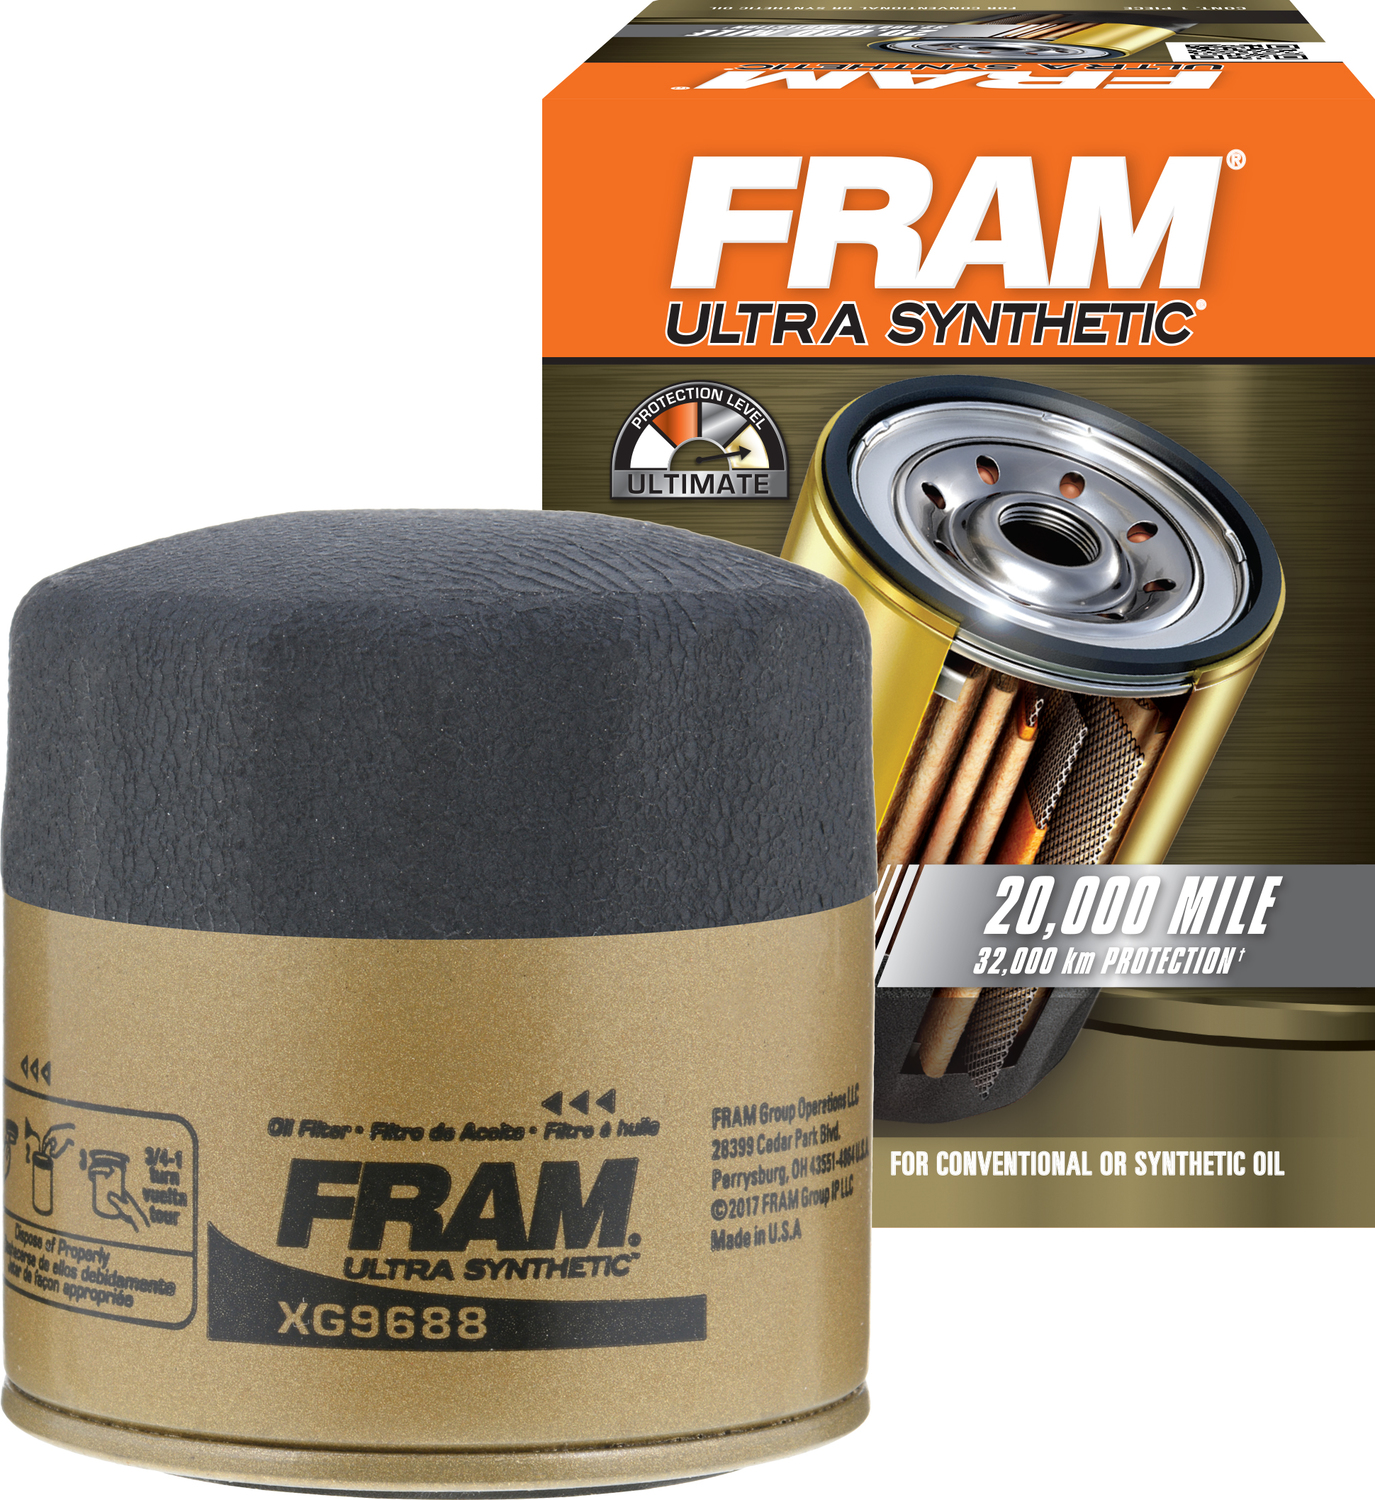 FRAM Ultra Synthetic Oil Filter, XG9688